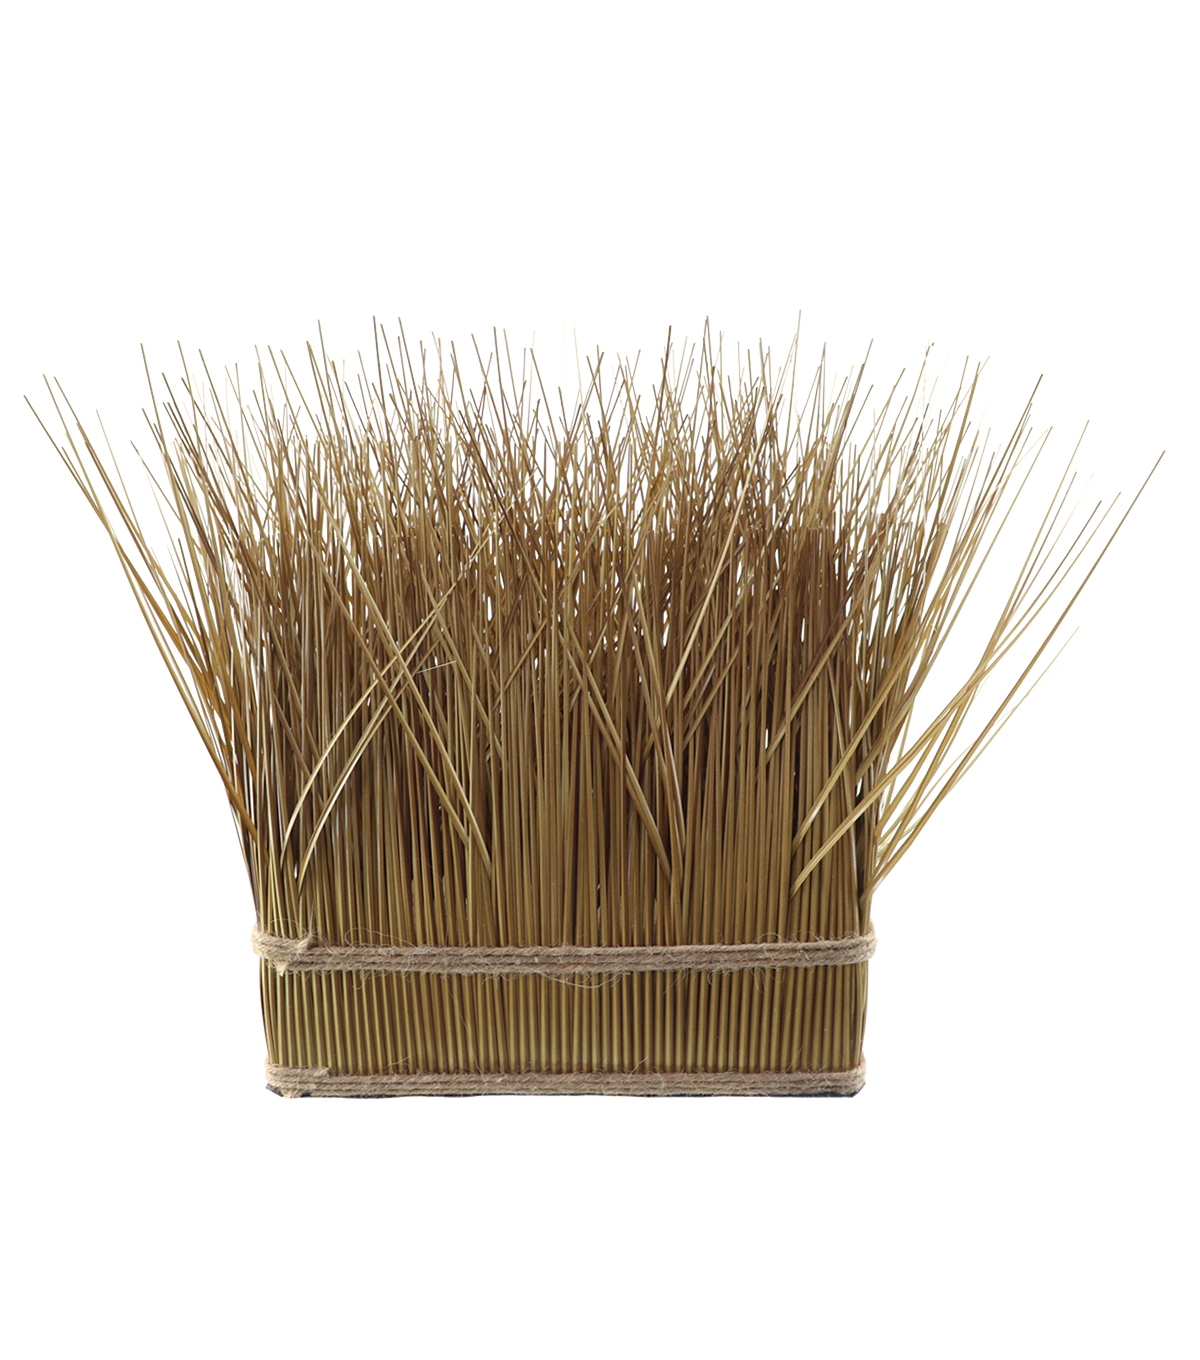 Blooming Autumn Oblong Grass Arrangement-Natural